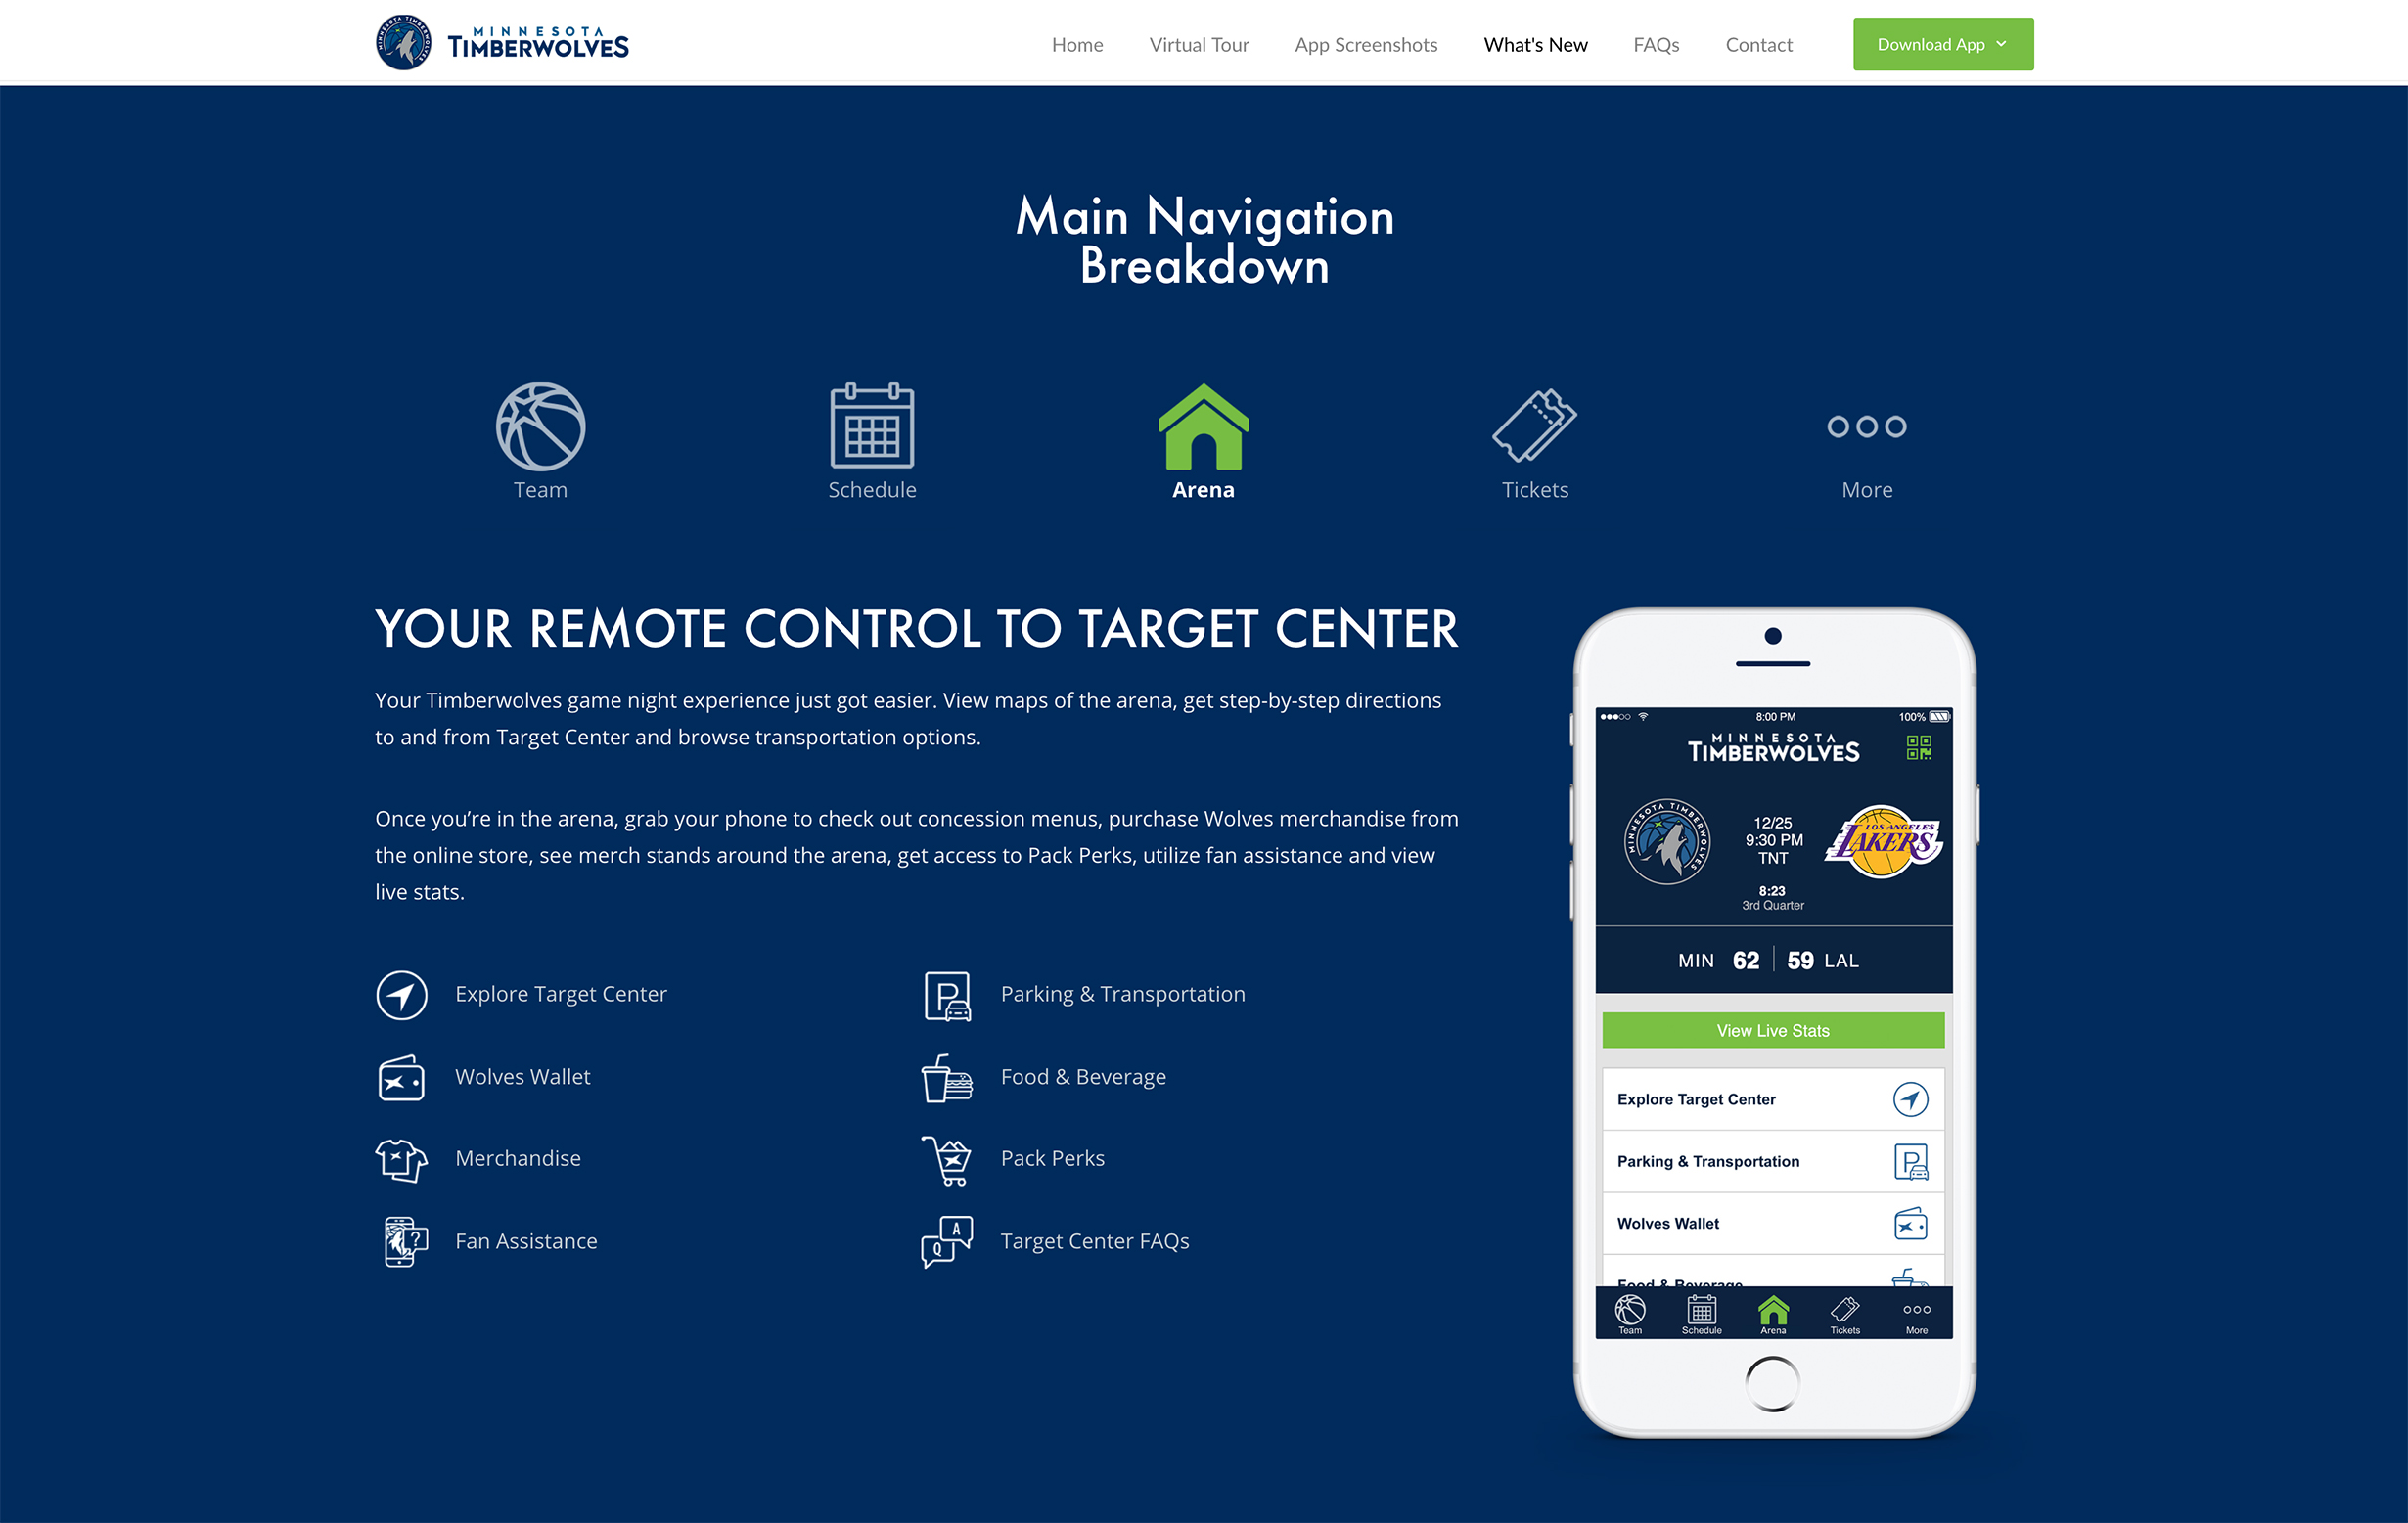 Timberwolves Mobile App, Tabbed Navigation Breakdown, Desktop View